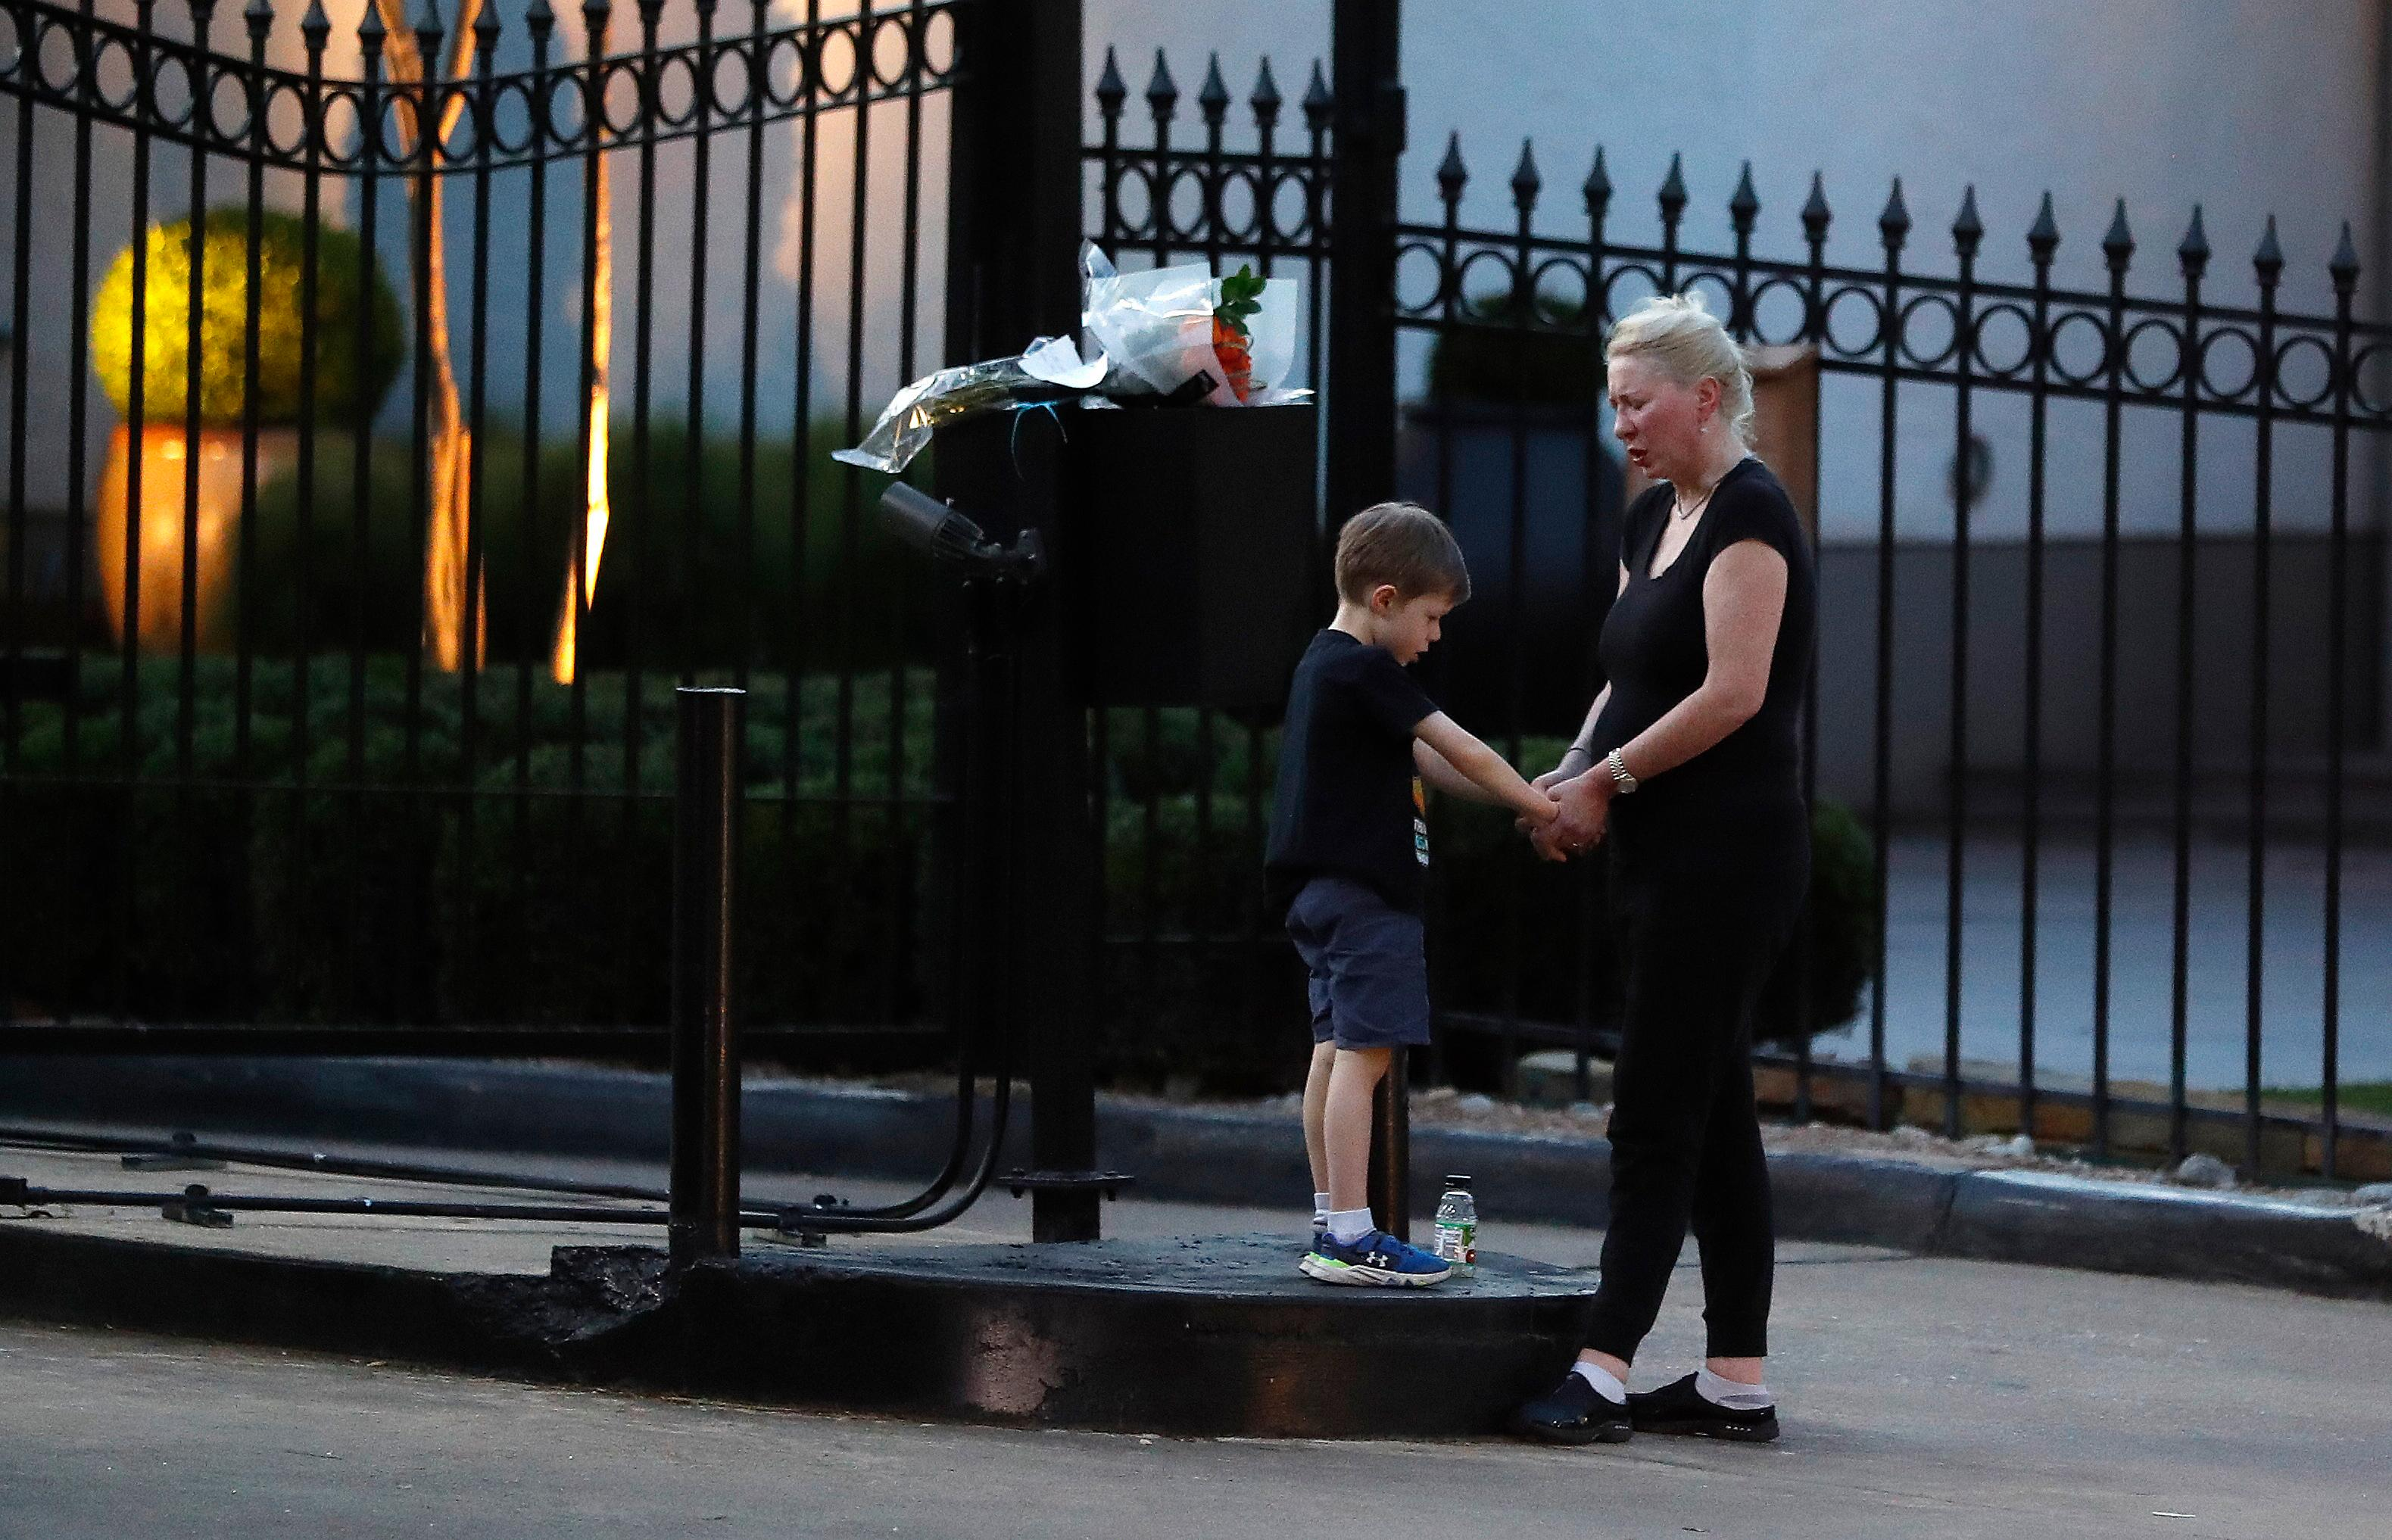 "Amanda Gross holds the hands of her 6-year-old son, Patrick Henry, as they pray outside of the gated community where former first lady Barbara Bush died earlier in the day, Tuesday, April 17, 2018, in Houston. ""Since he was in my womb, I have read him stories about more first ladies than presidents,"" Gross said. ""Barbara Bush was the appropriate political figure. She will be missed,"" said Gross. (Karen Warren/Houston Chronicle via AP)"